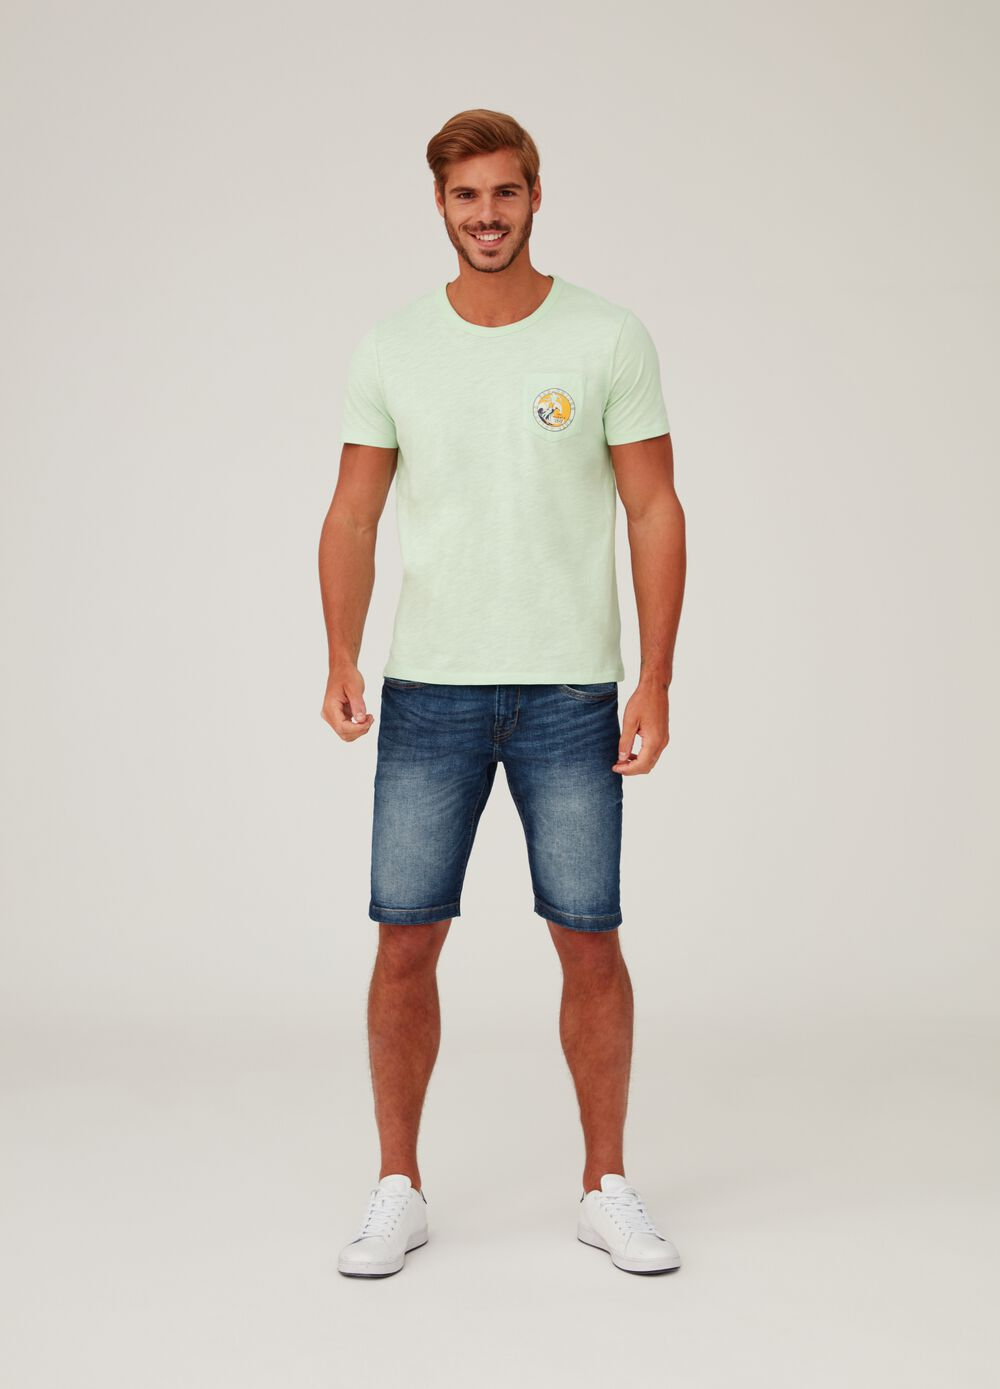 T-shirt in slub jersey with print and pocket